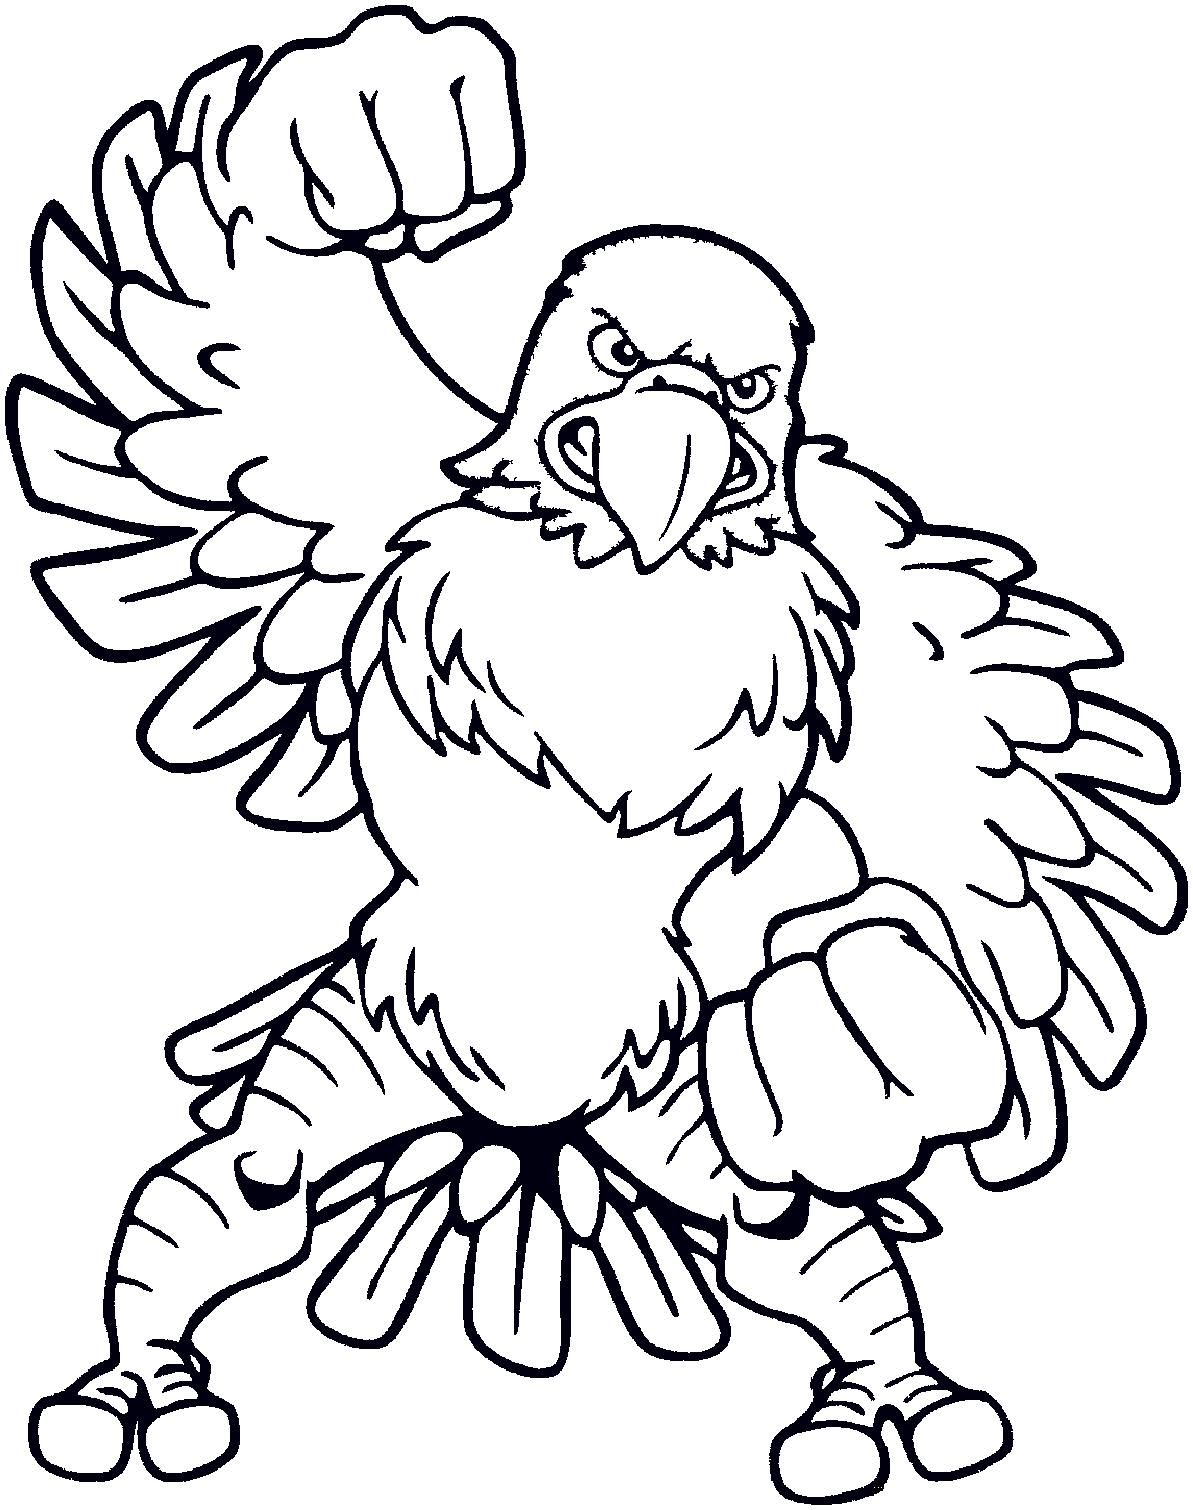 new coloring pages eagles football for you  cartoon